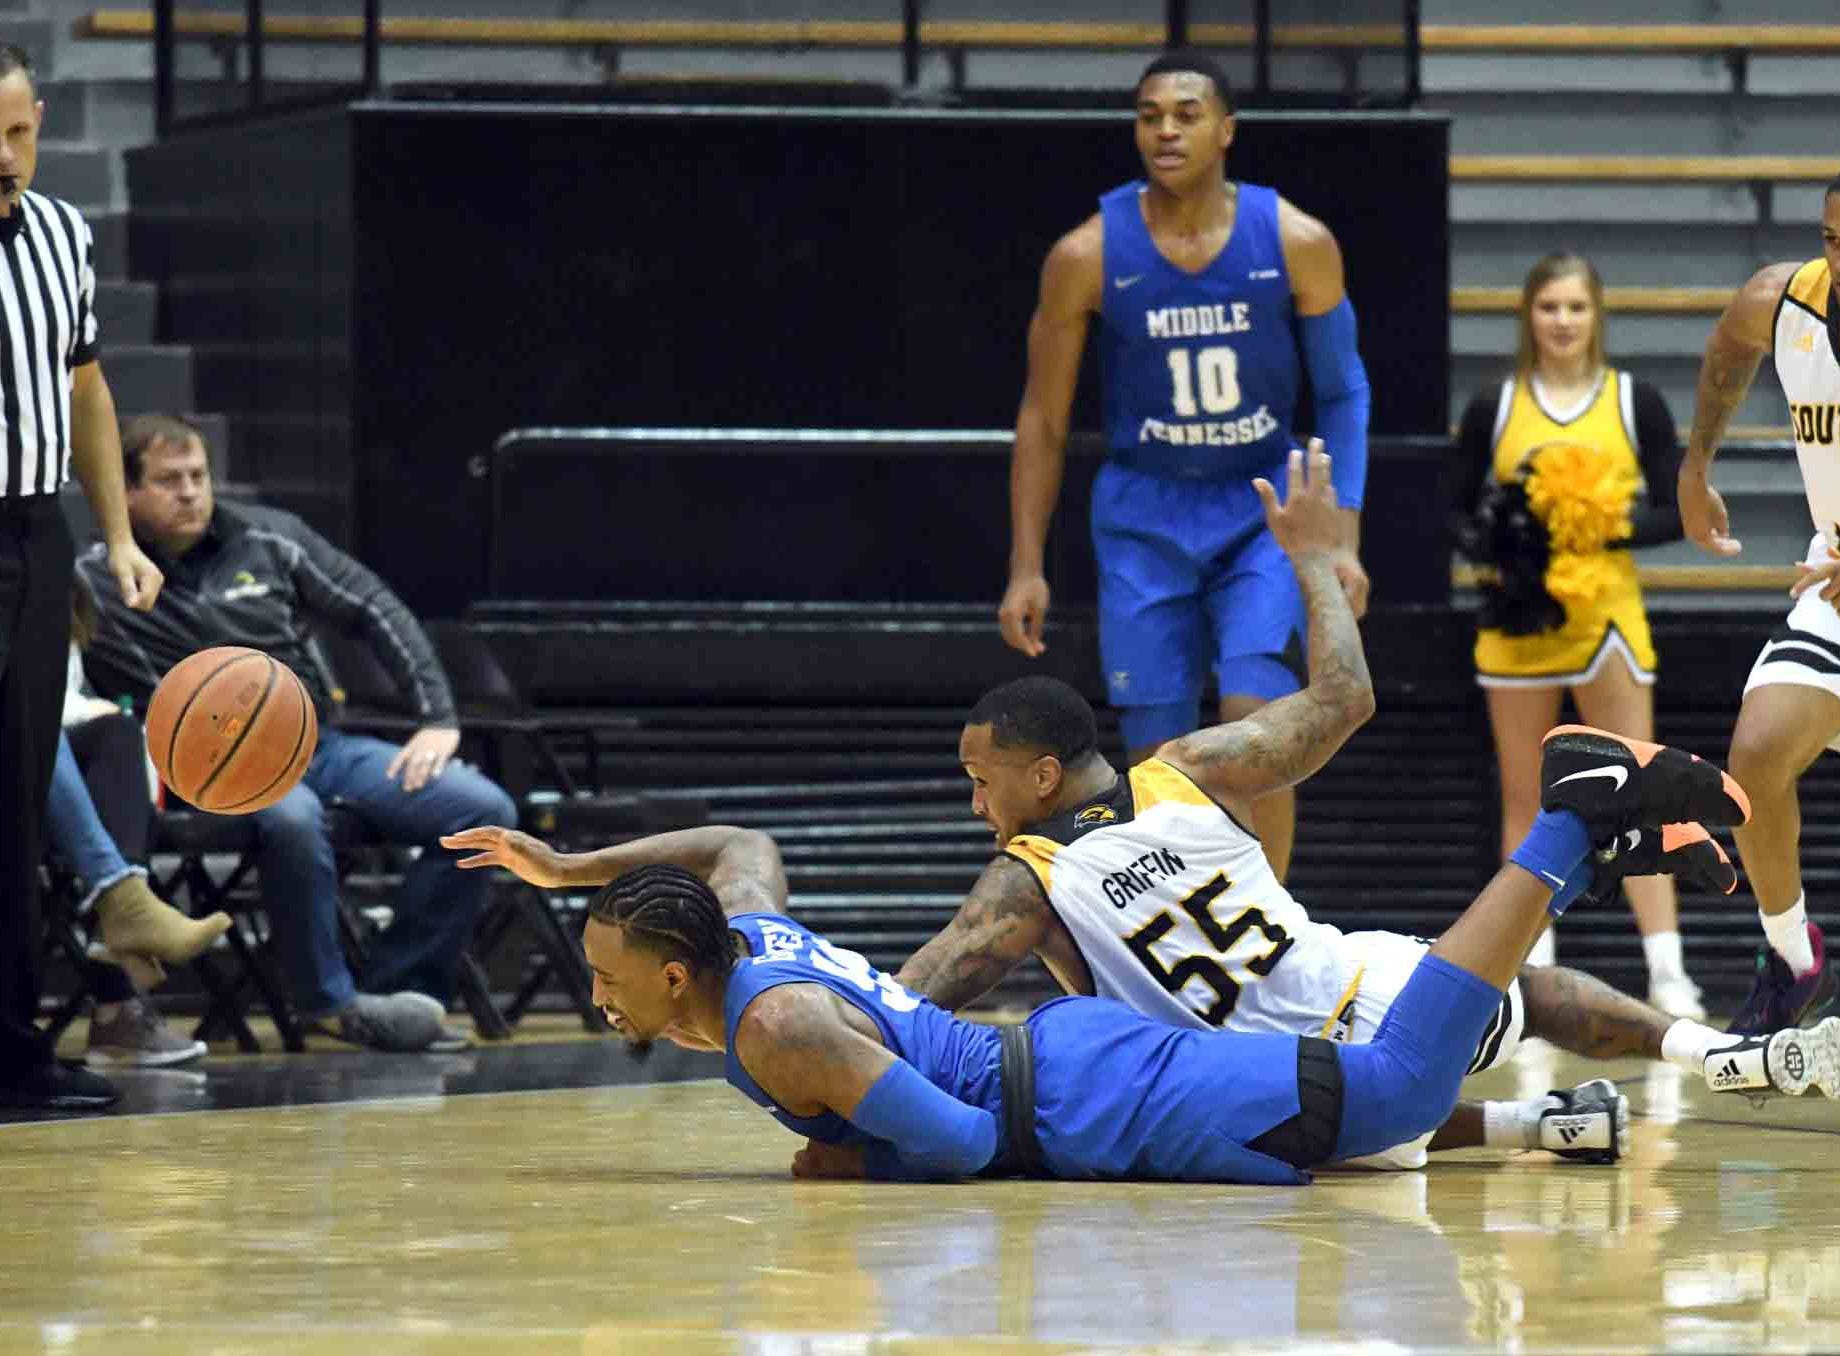 Southern Miss guard Tyree Griffin reaches for a loose ball in a game against Middle Tennessee in Reed Green Coliseum on Thursday, January 10, 2019.